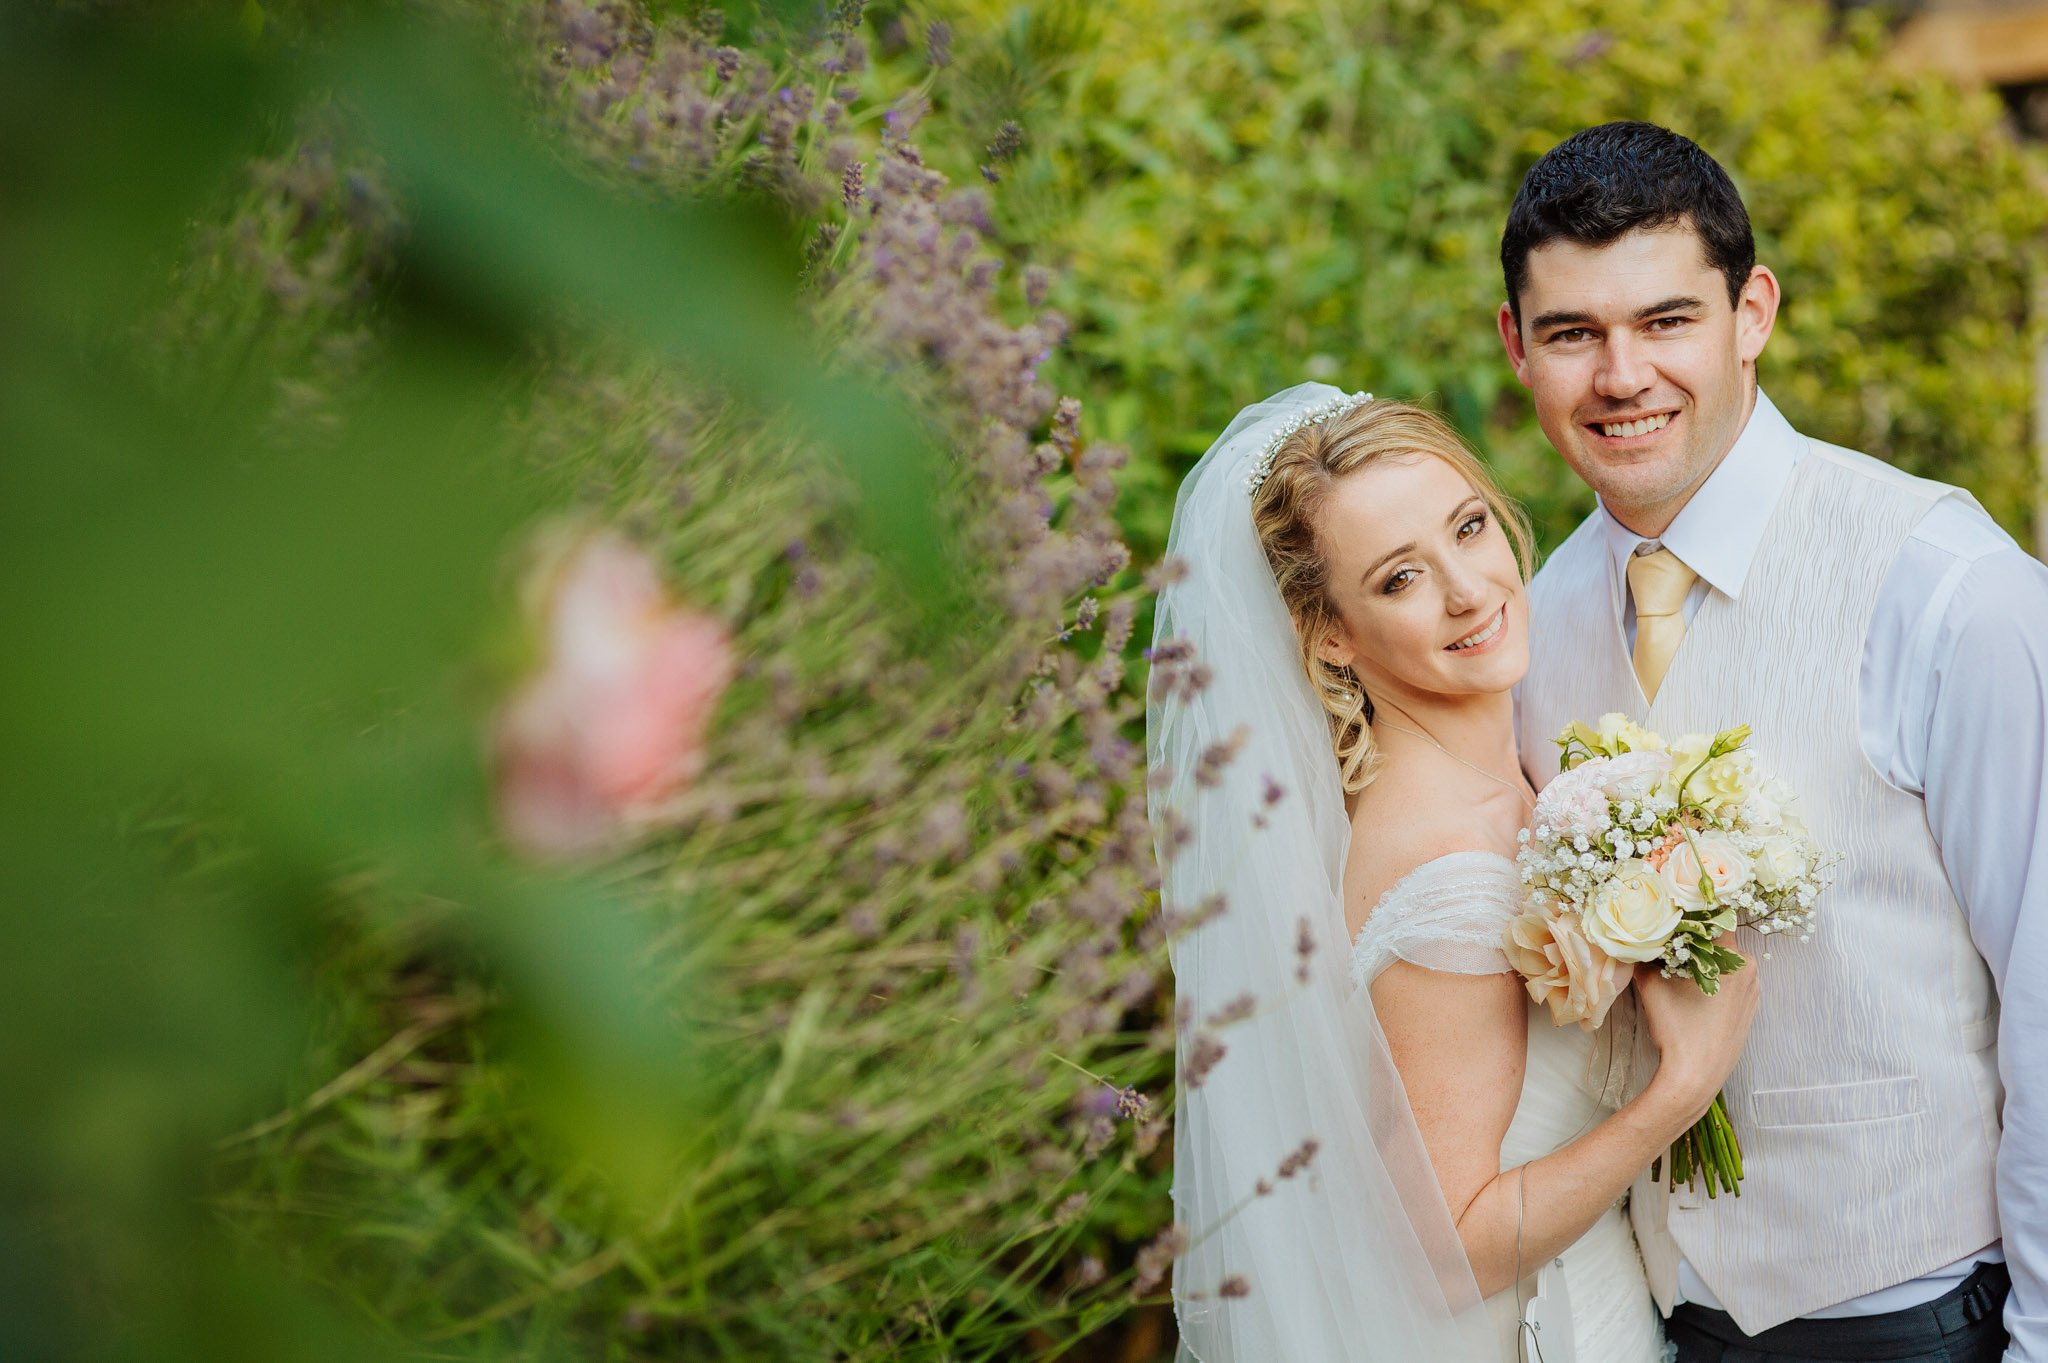 Georgina + Mike - Wedding photography in Malvern, Worcestershire 71